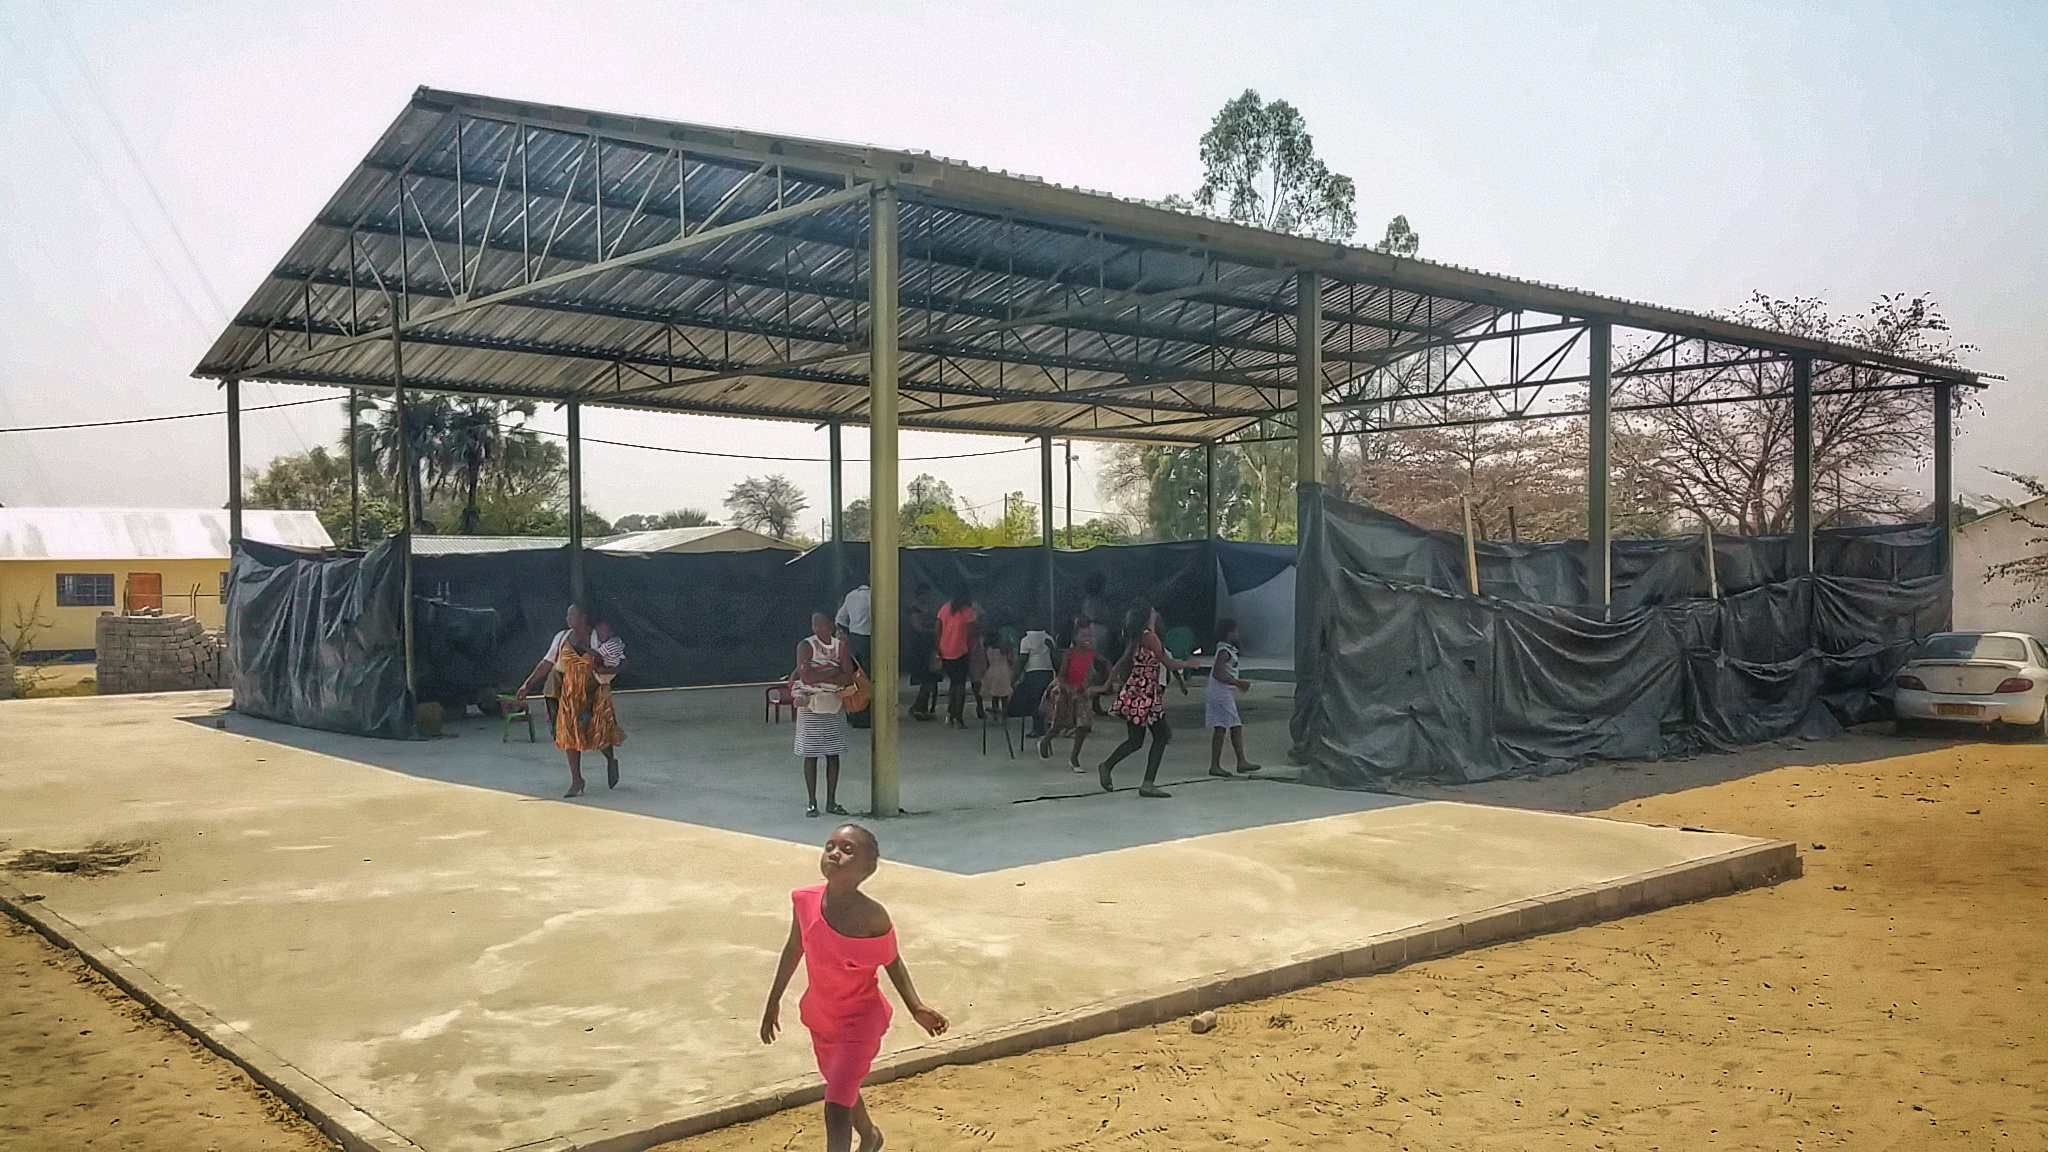 Believers Fellowship gathers here for worship, prayer and study. As you can see, they are in the process of building.